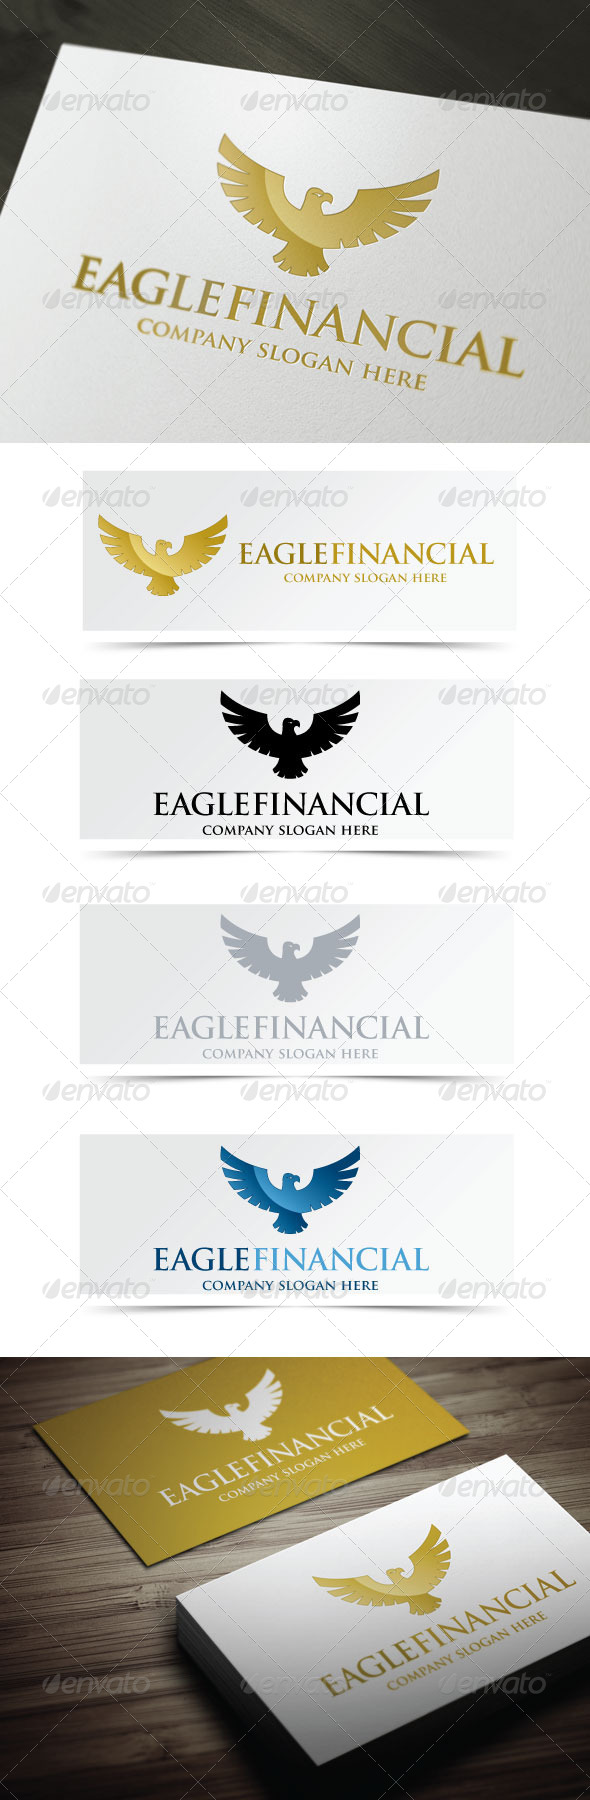 Eagle Financial - Animals Logo Templates